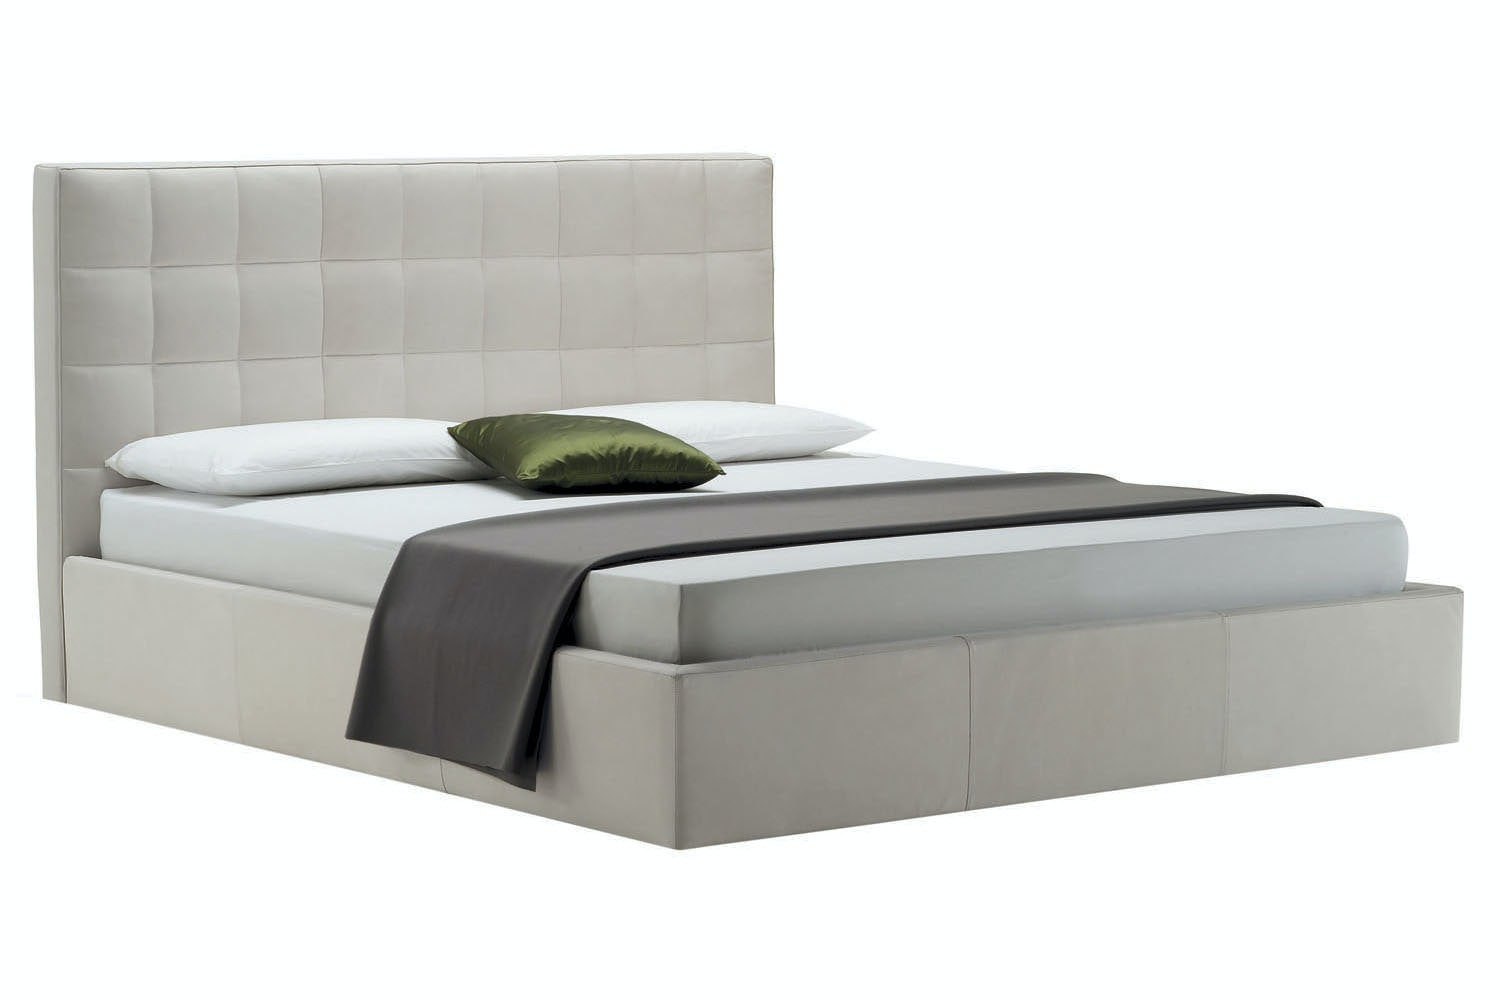 Overbox Bed by Emaf Progetti for Zanotta